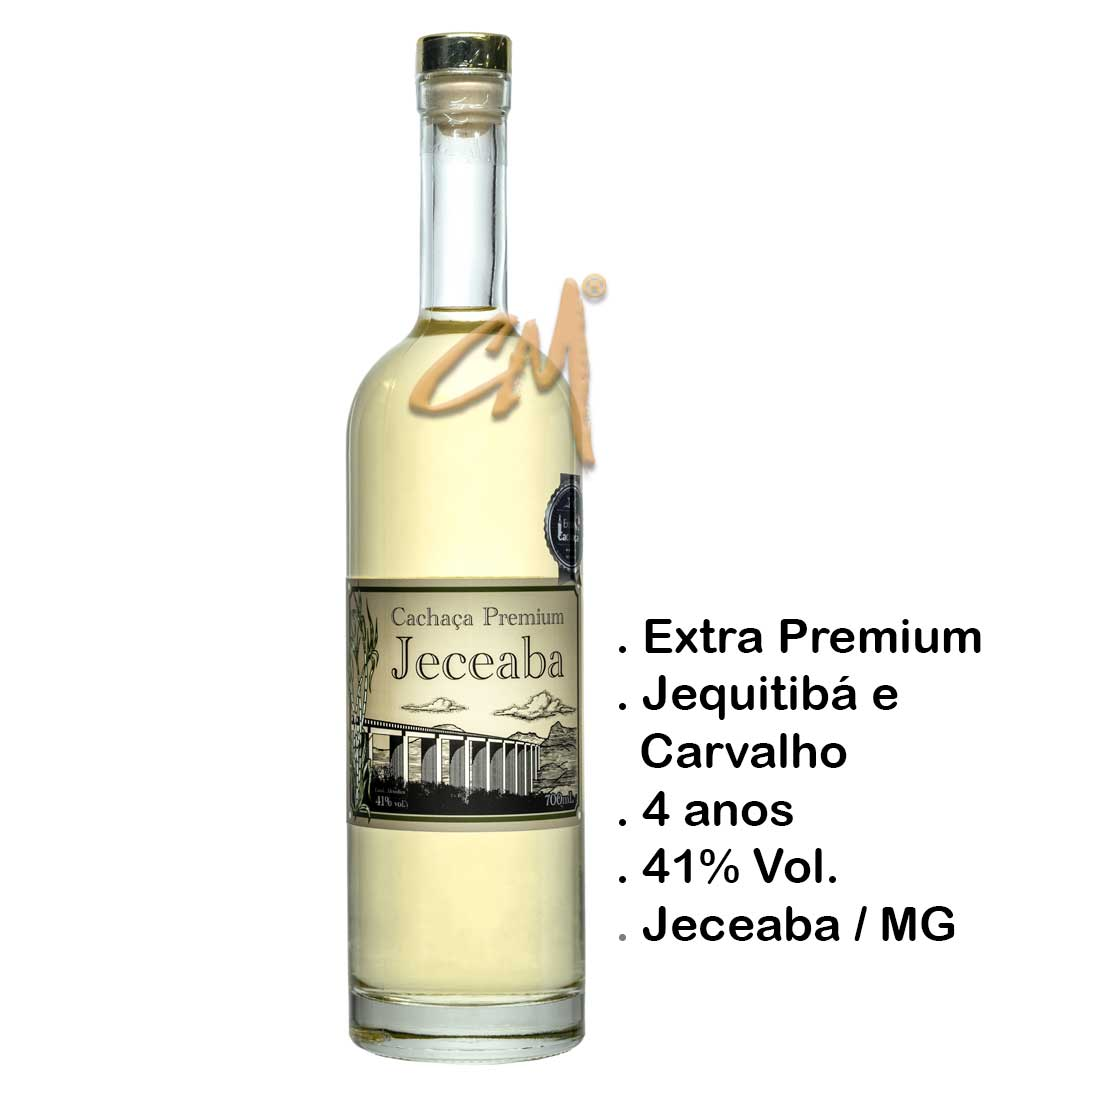 Cachaça Jeceaba Premium 750 ml (Jeceaba - MG)